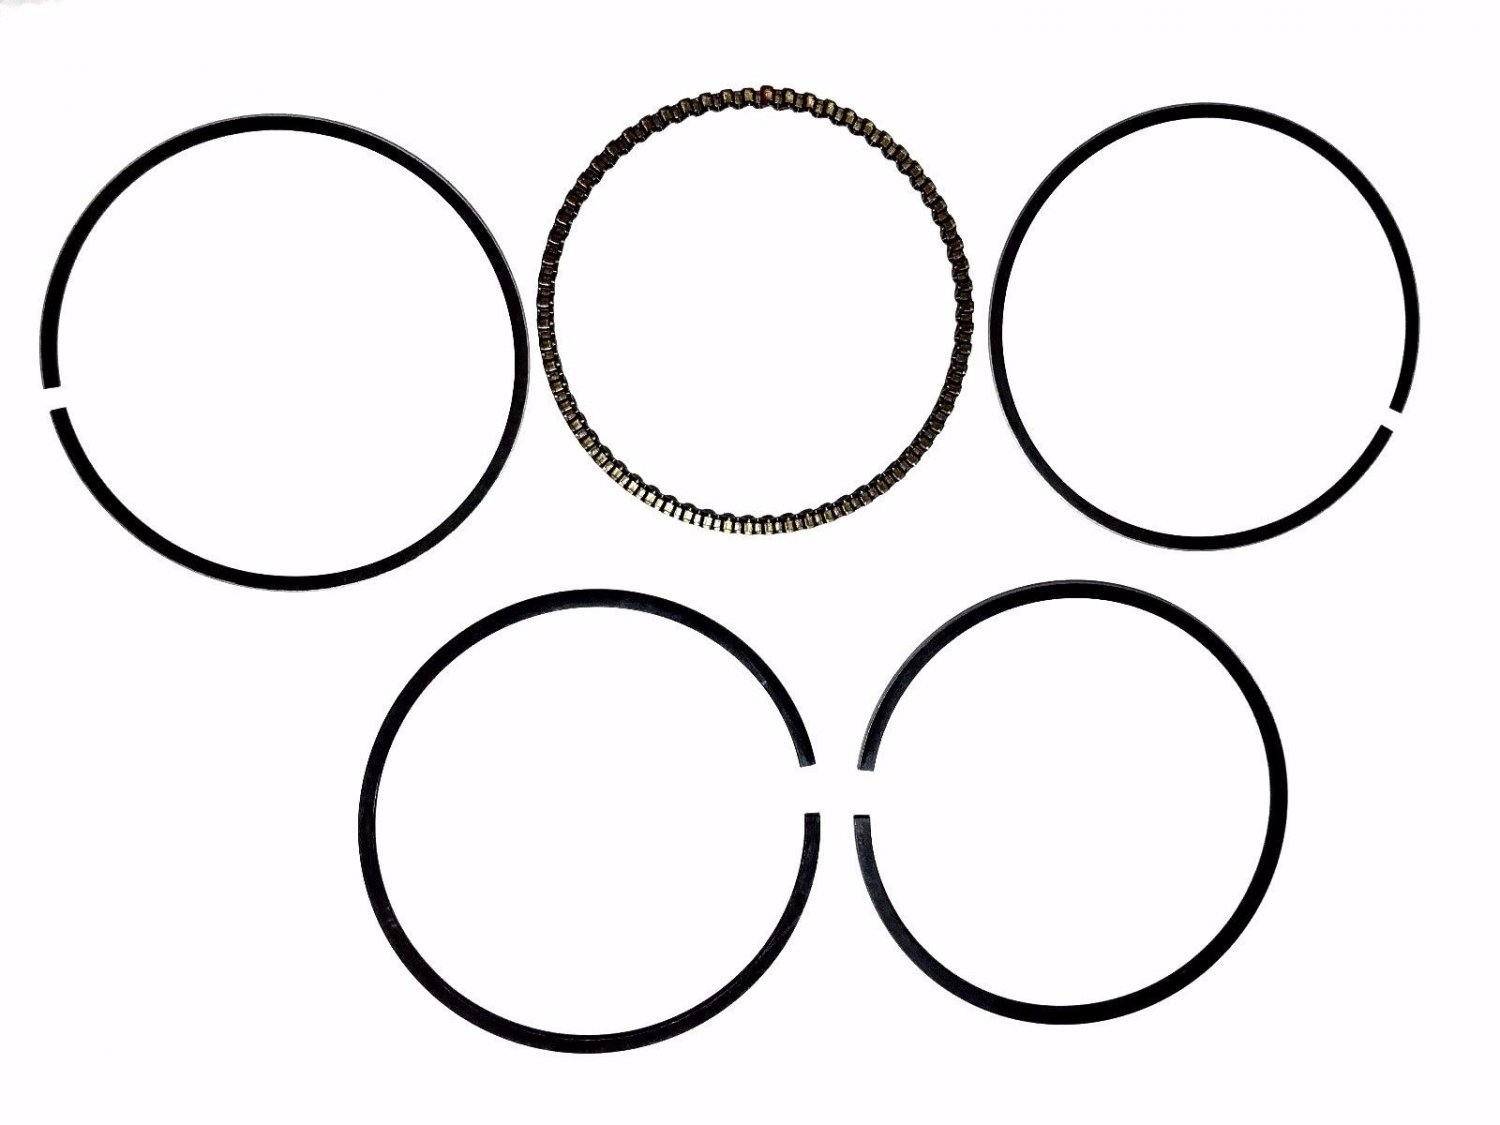 PISTON RINGS HAMMERHEAD TOMBERLIN CARTER TALON DAZON ASW 150 150CC GO KART BUGGY